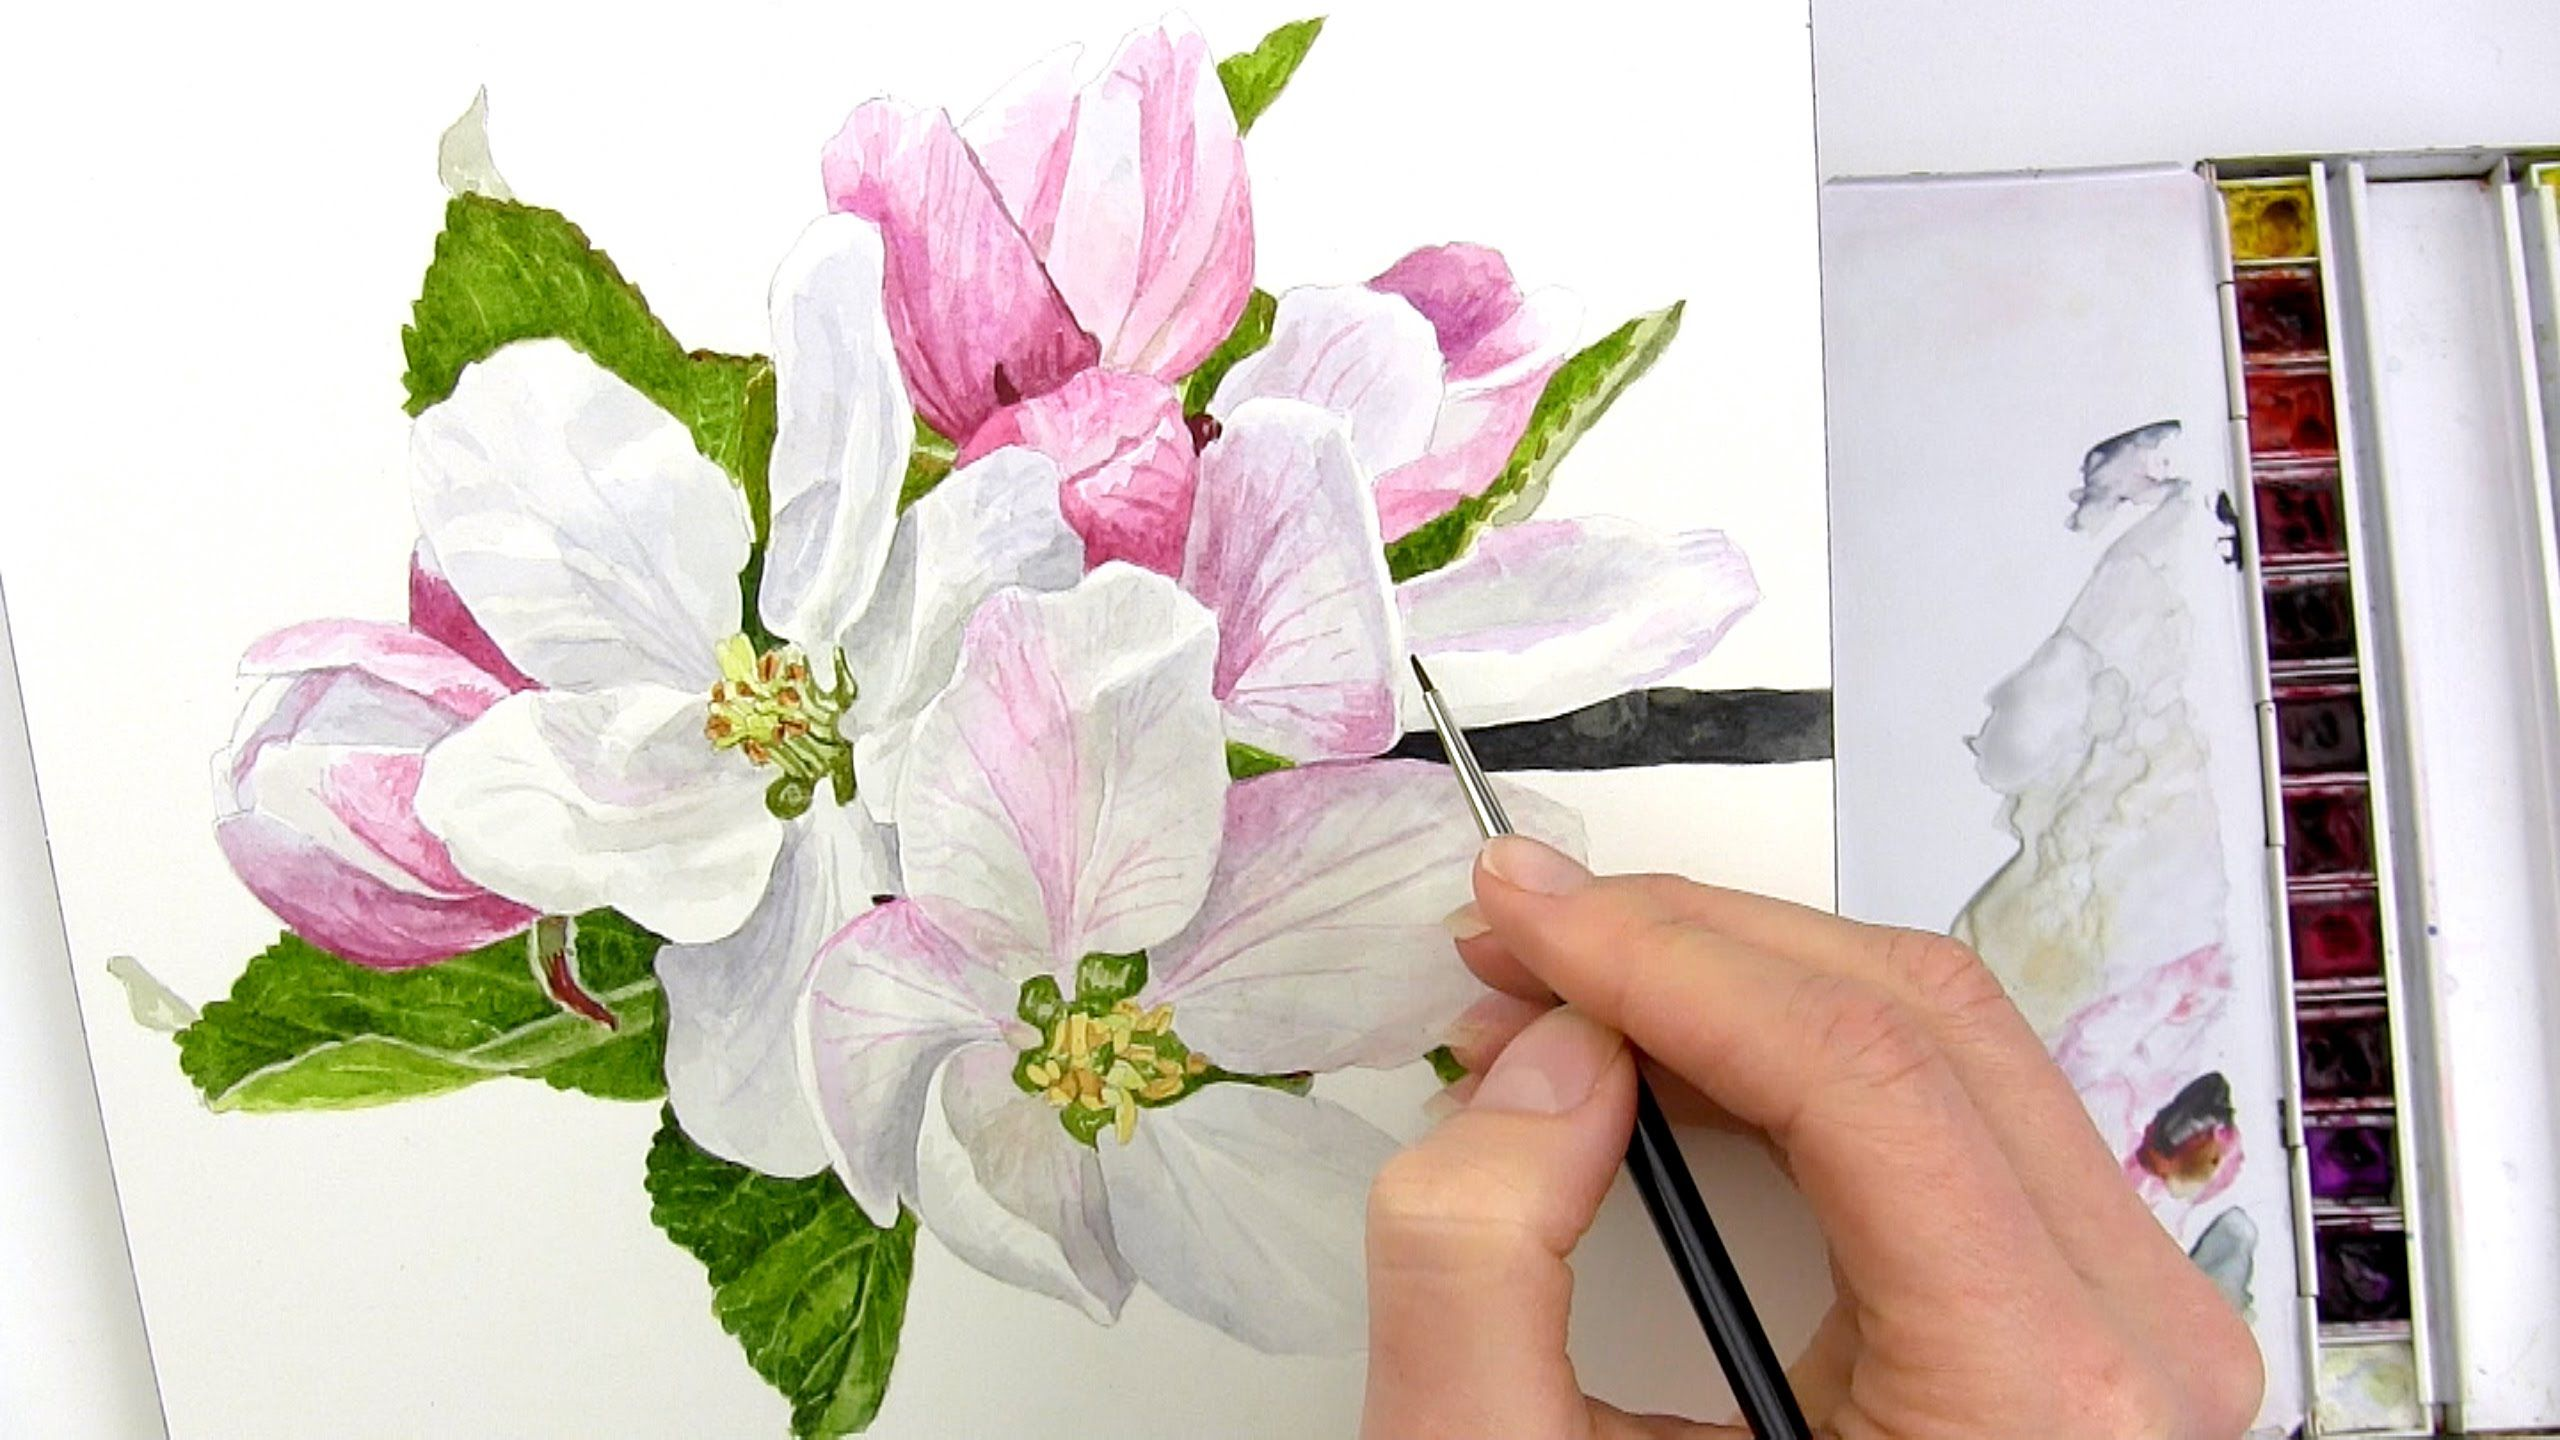 Watercolor painting watercolor flowers flower art flower - How To Paint Realistic Apple Blossom In Watercolour With Anna Mason